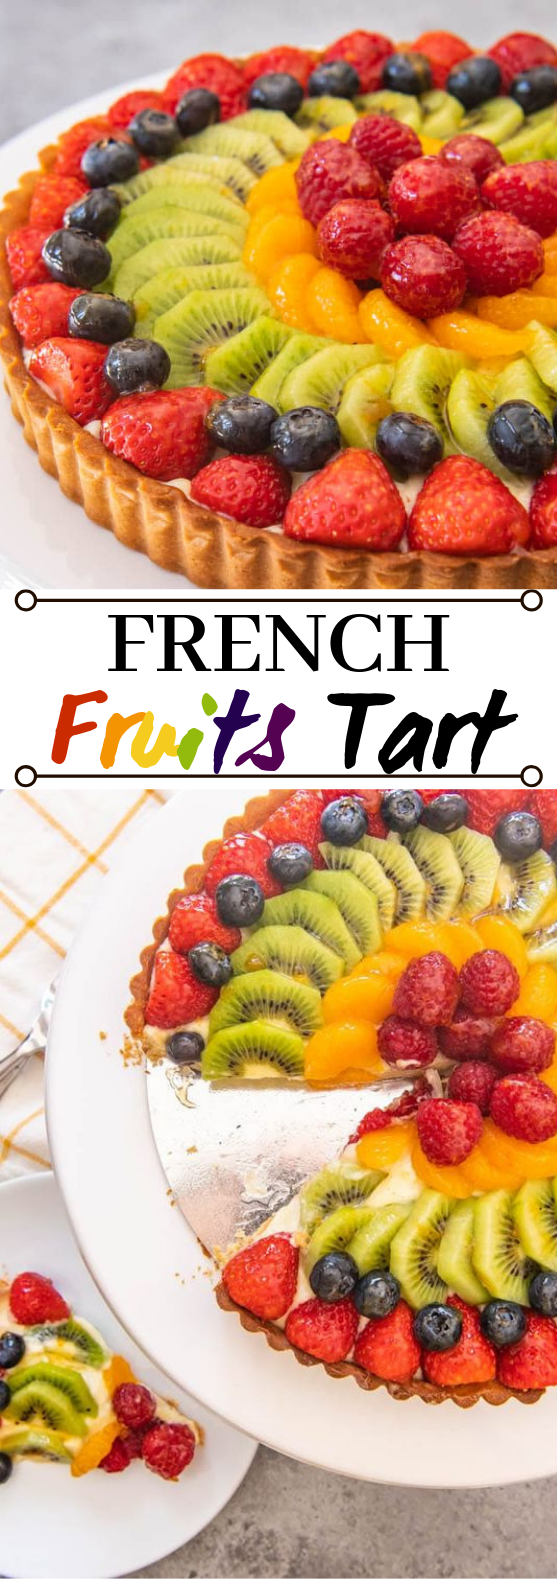 French Fruit Tart #desserts #pie